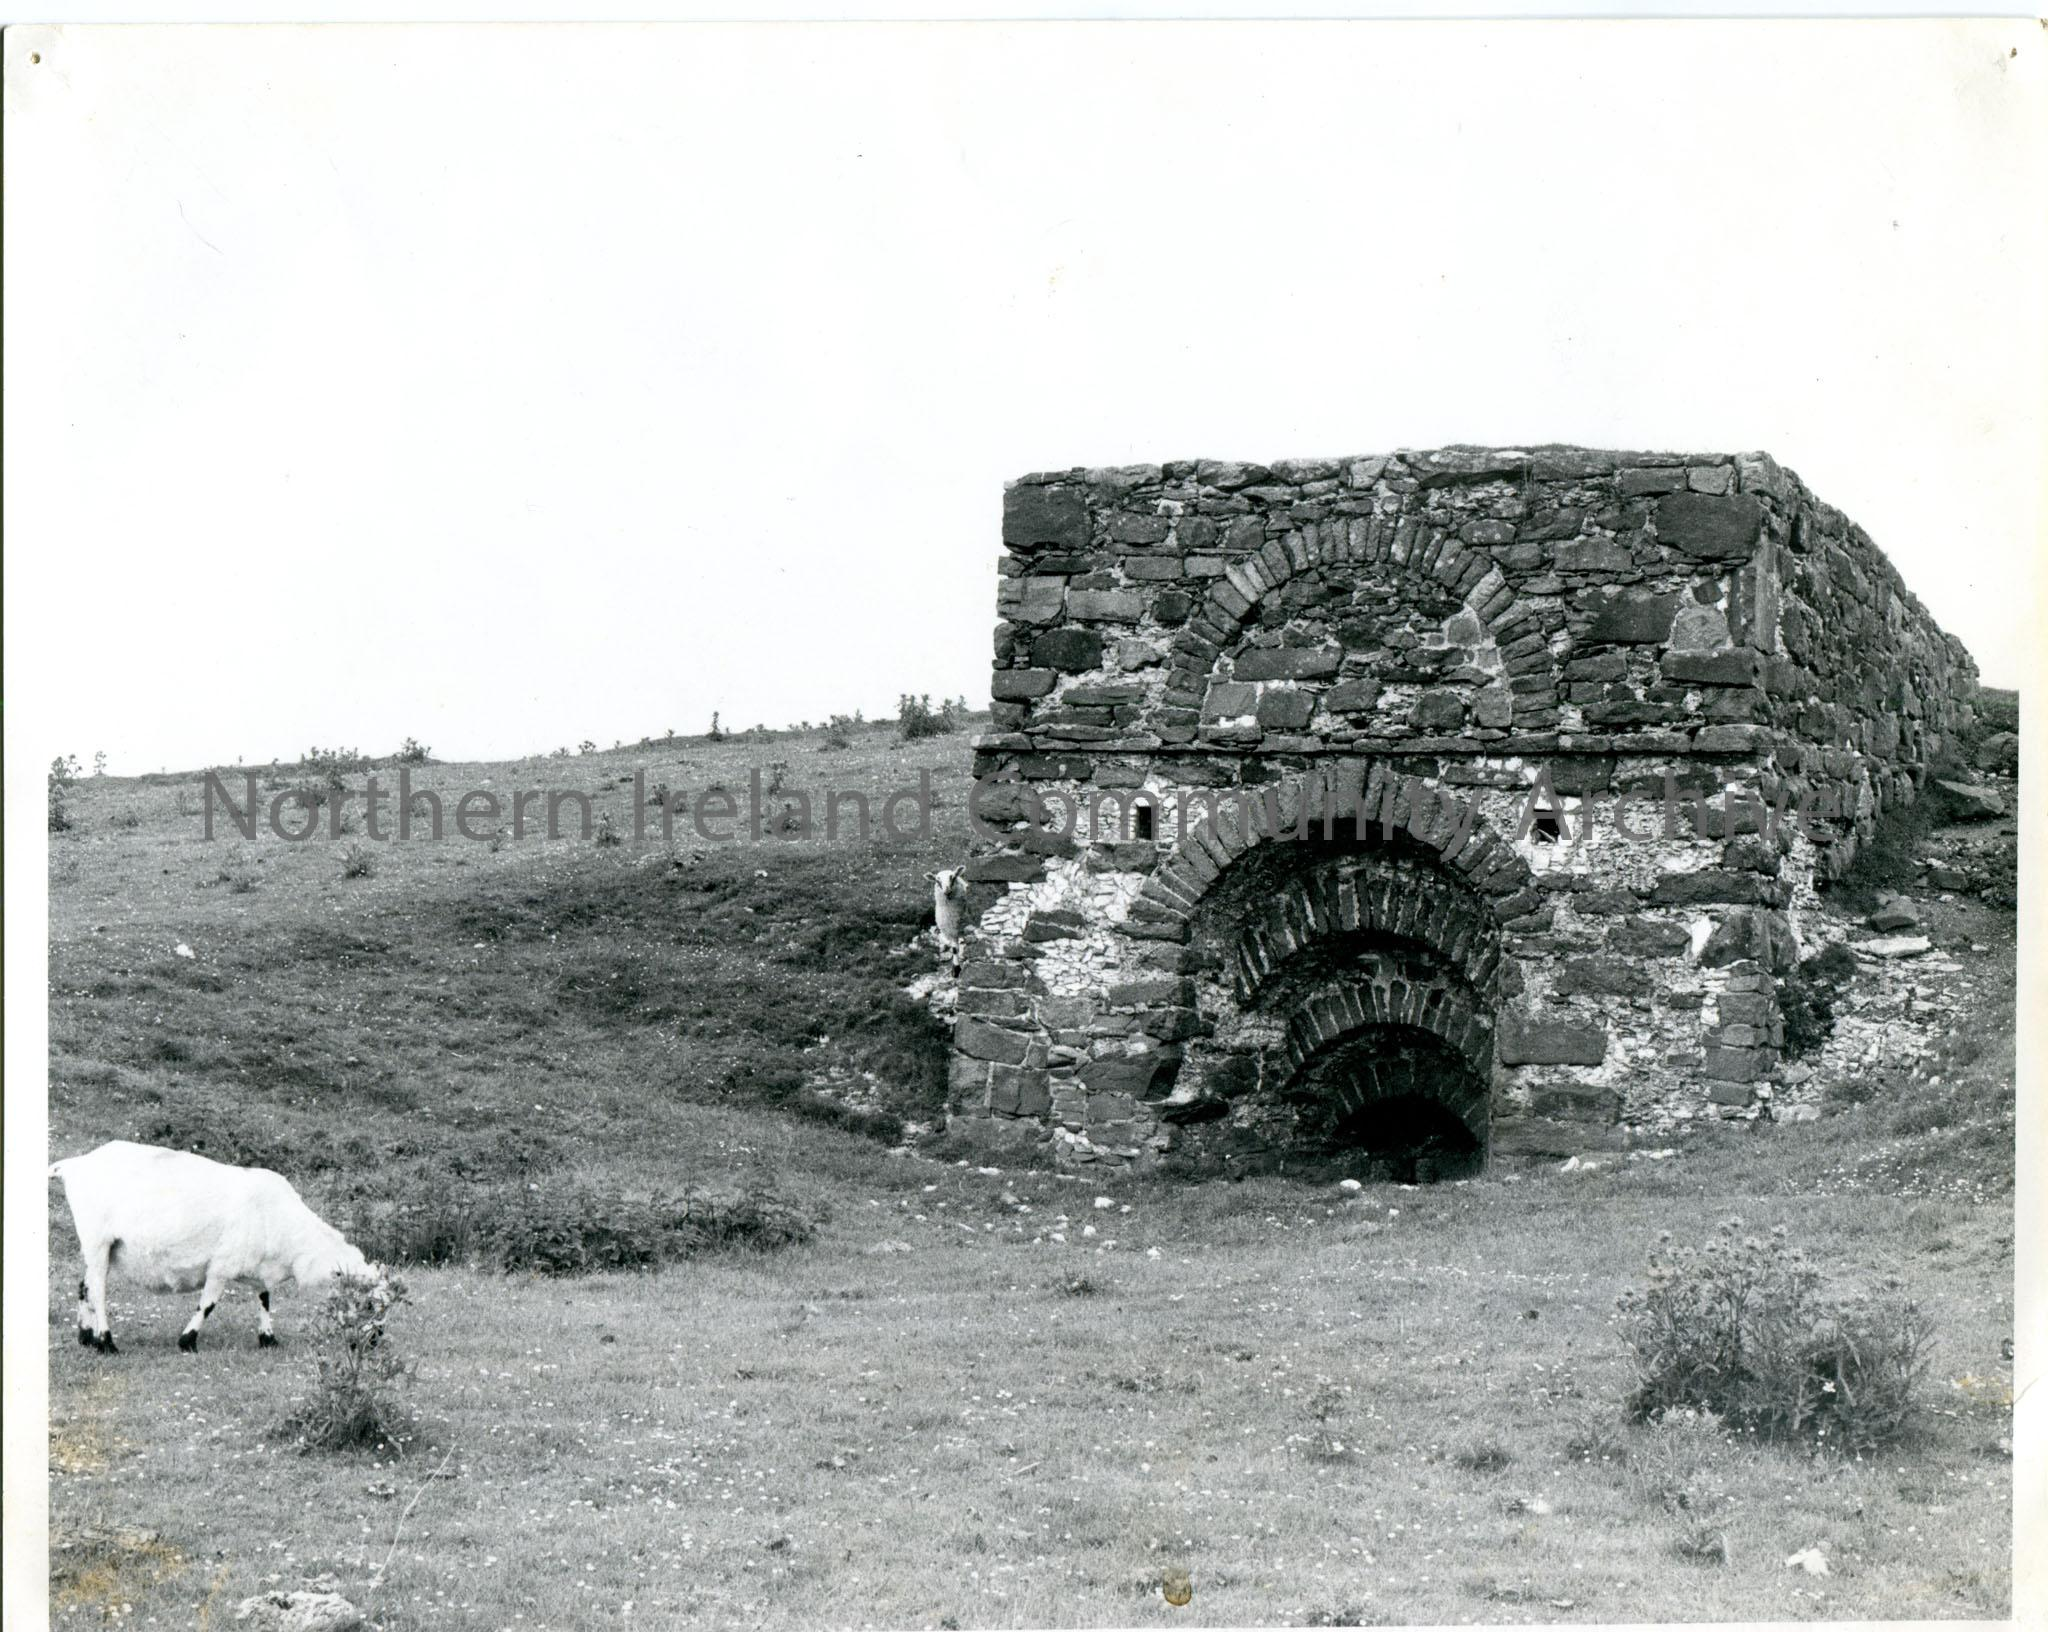 B/W photograph of one of two lime kilns situated along the road to Murlough Bay.